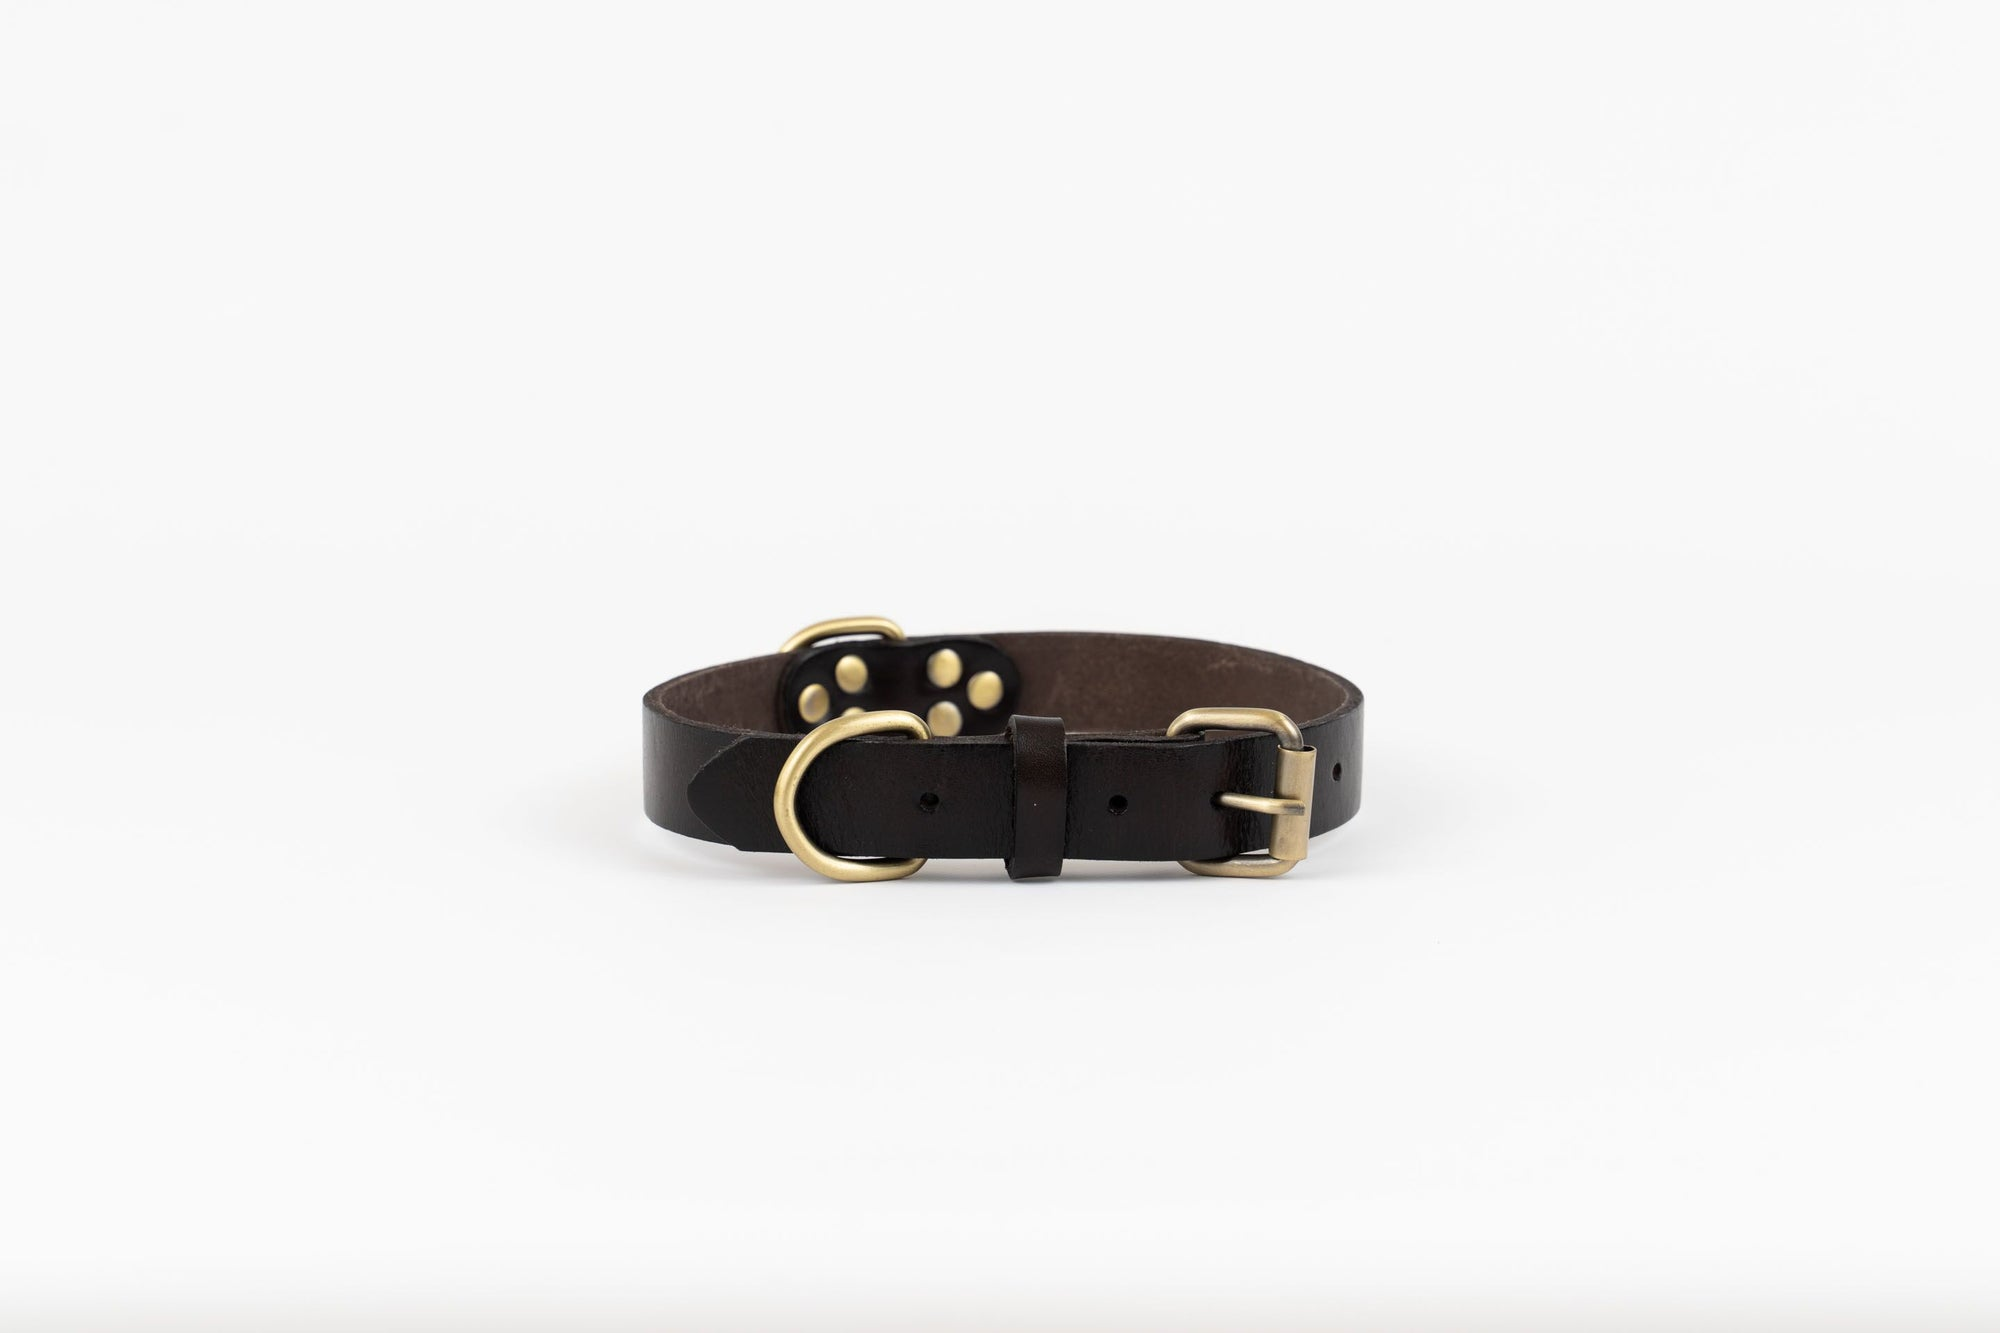 Hunter Leather Collar